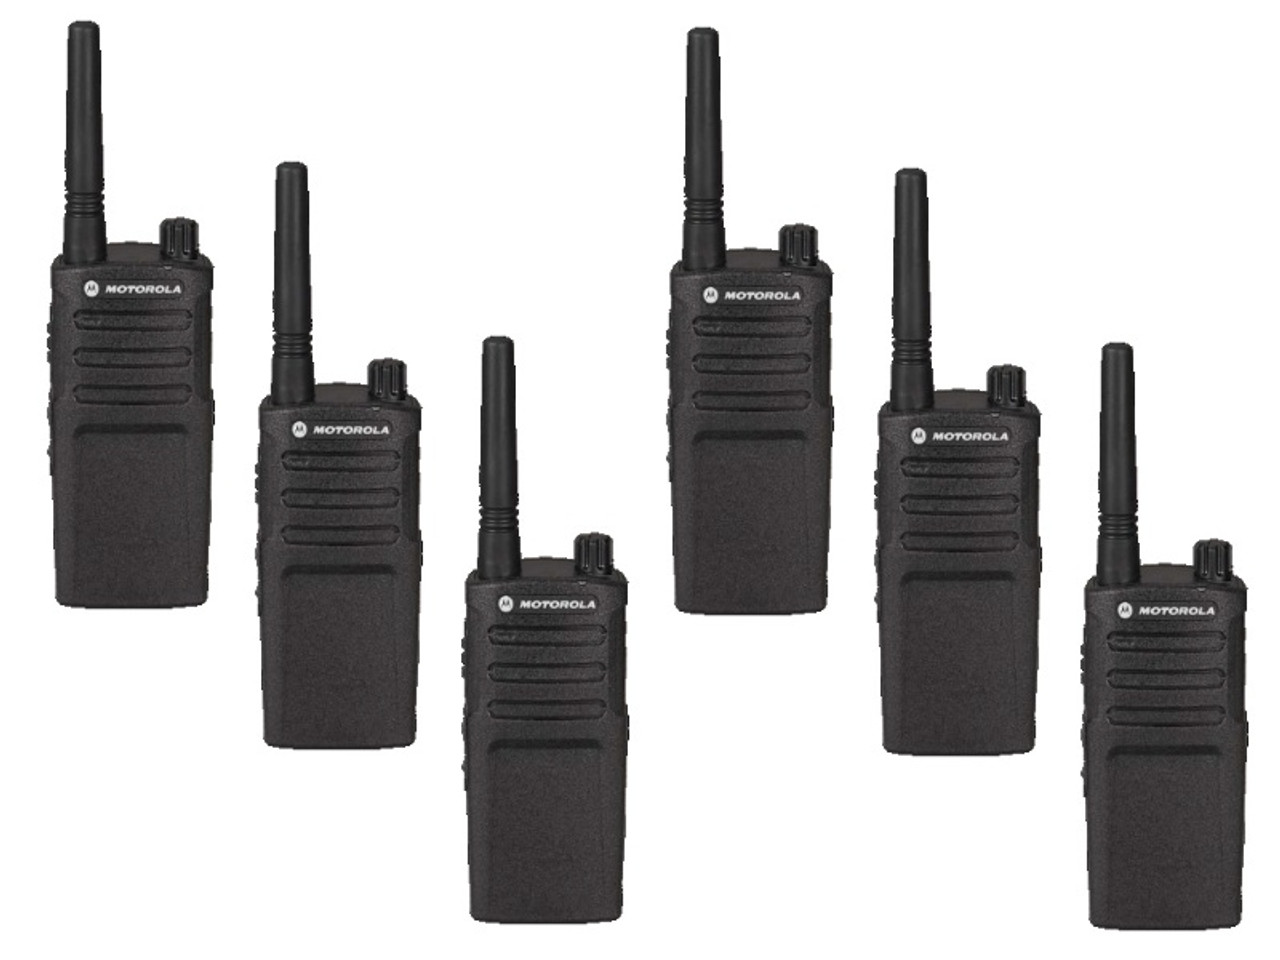 Motorola RMM2050 Six Pack 2-Way 5 Channel MURS VHF Radio